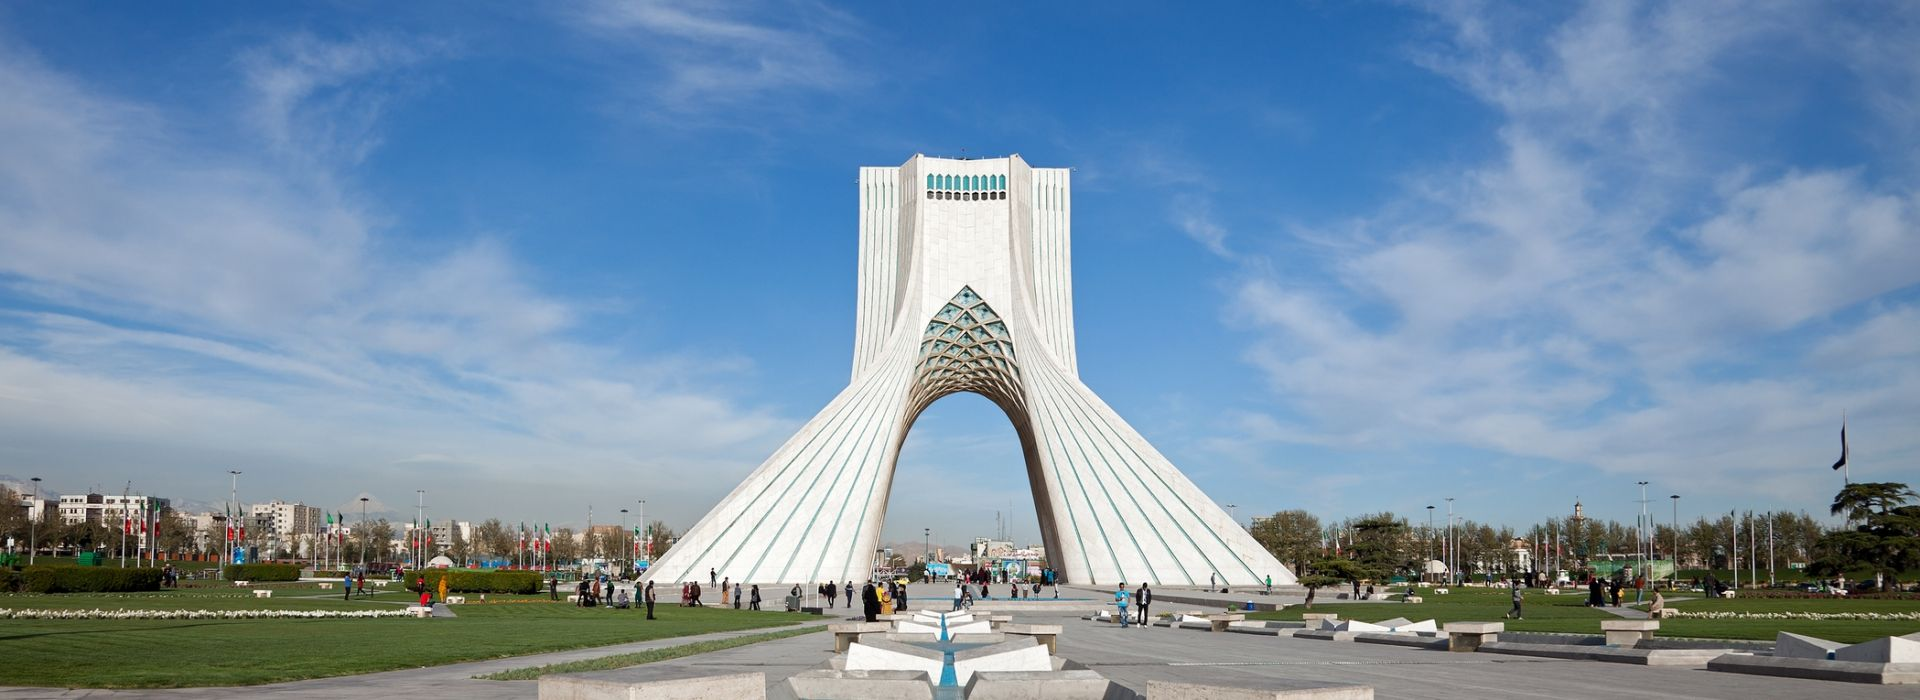 Travelling Iran - Tours and Holiday Packages in Iran